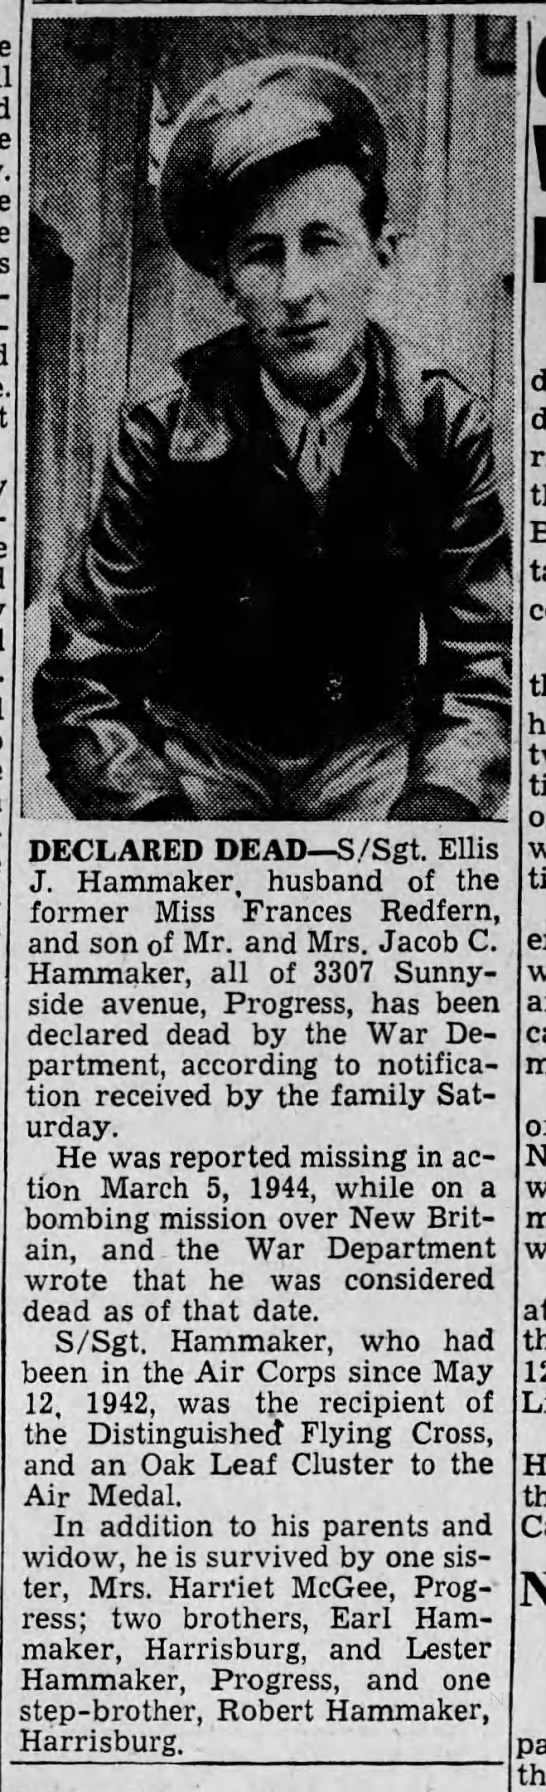 1946 ellis hammaker dec dead by dod -